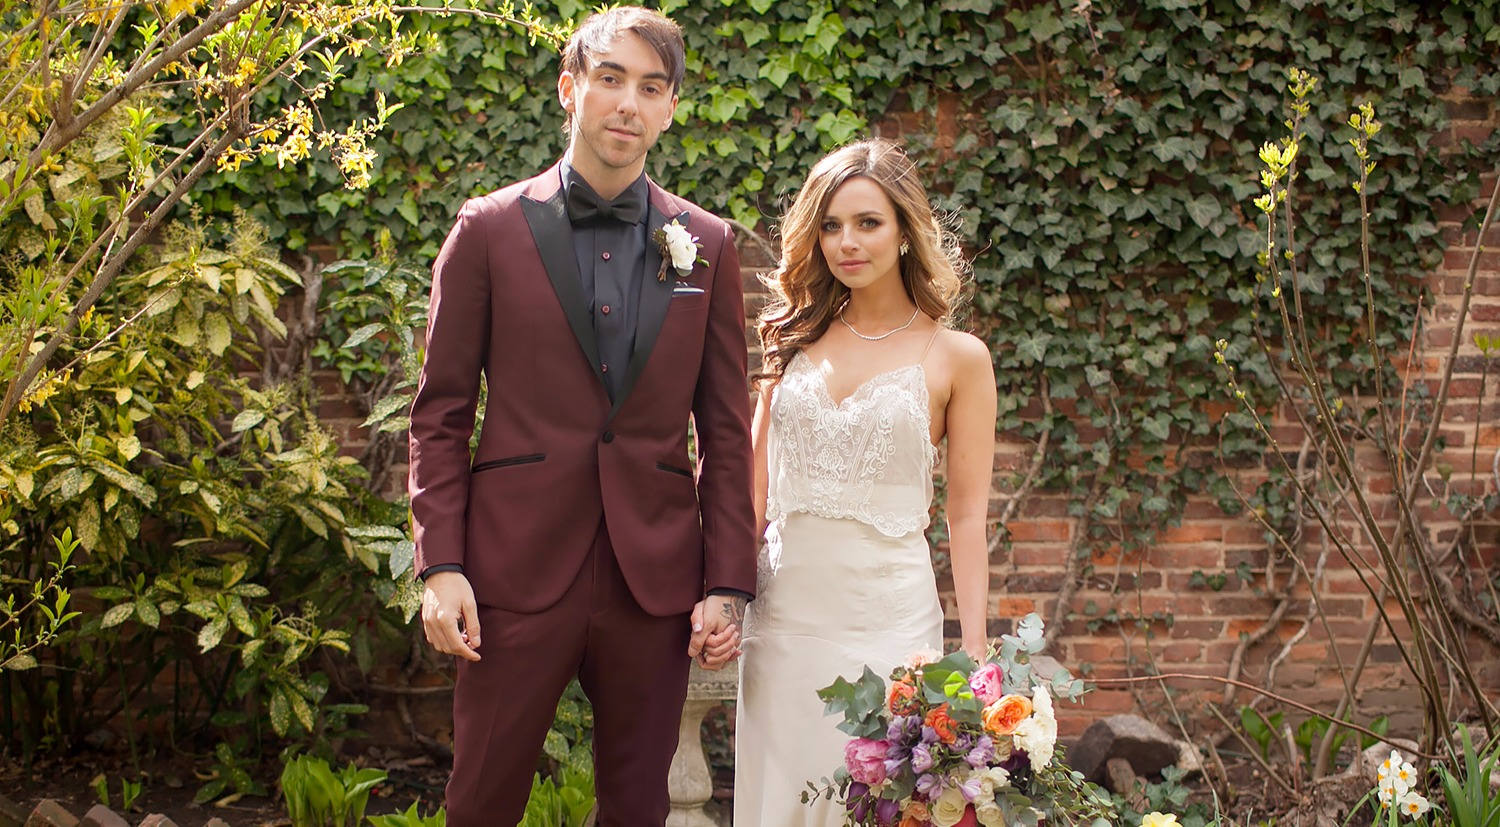 Alex Gaskarth and Lisa Ruocco's wedding photo. Alex is in a maroon suit and Lisa is in a white sleeveless gown, holding a bouquet of colorful flowers. They are holding hands.